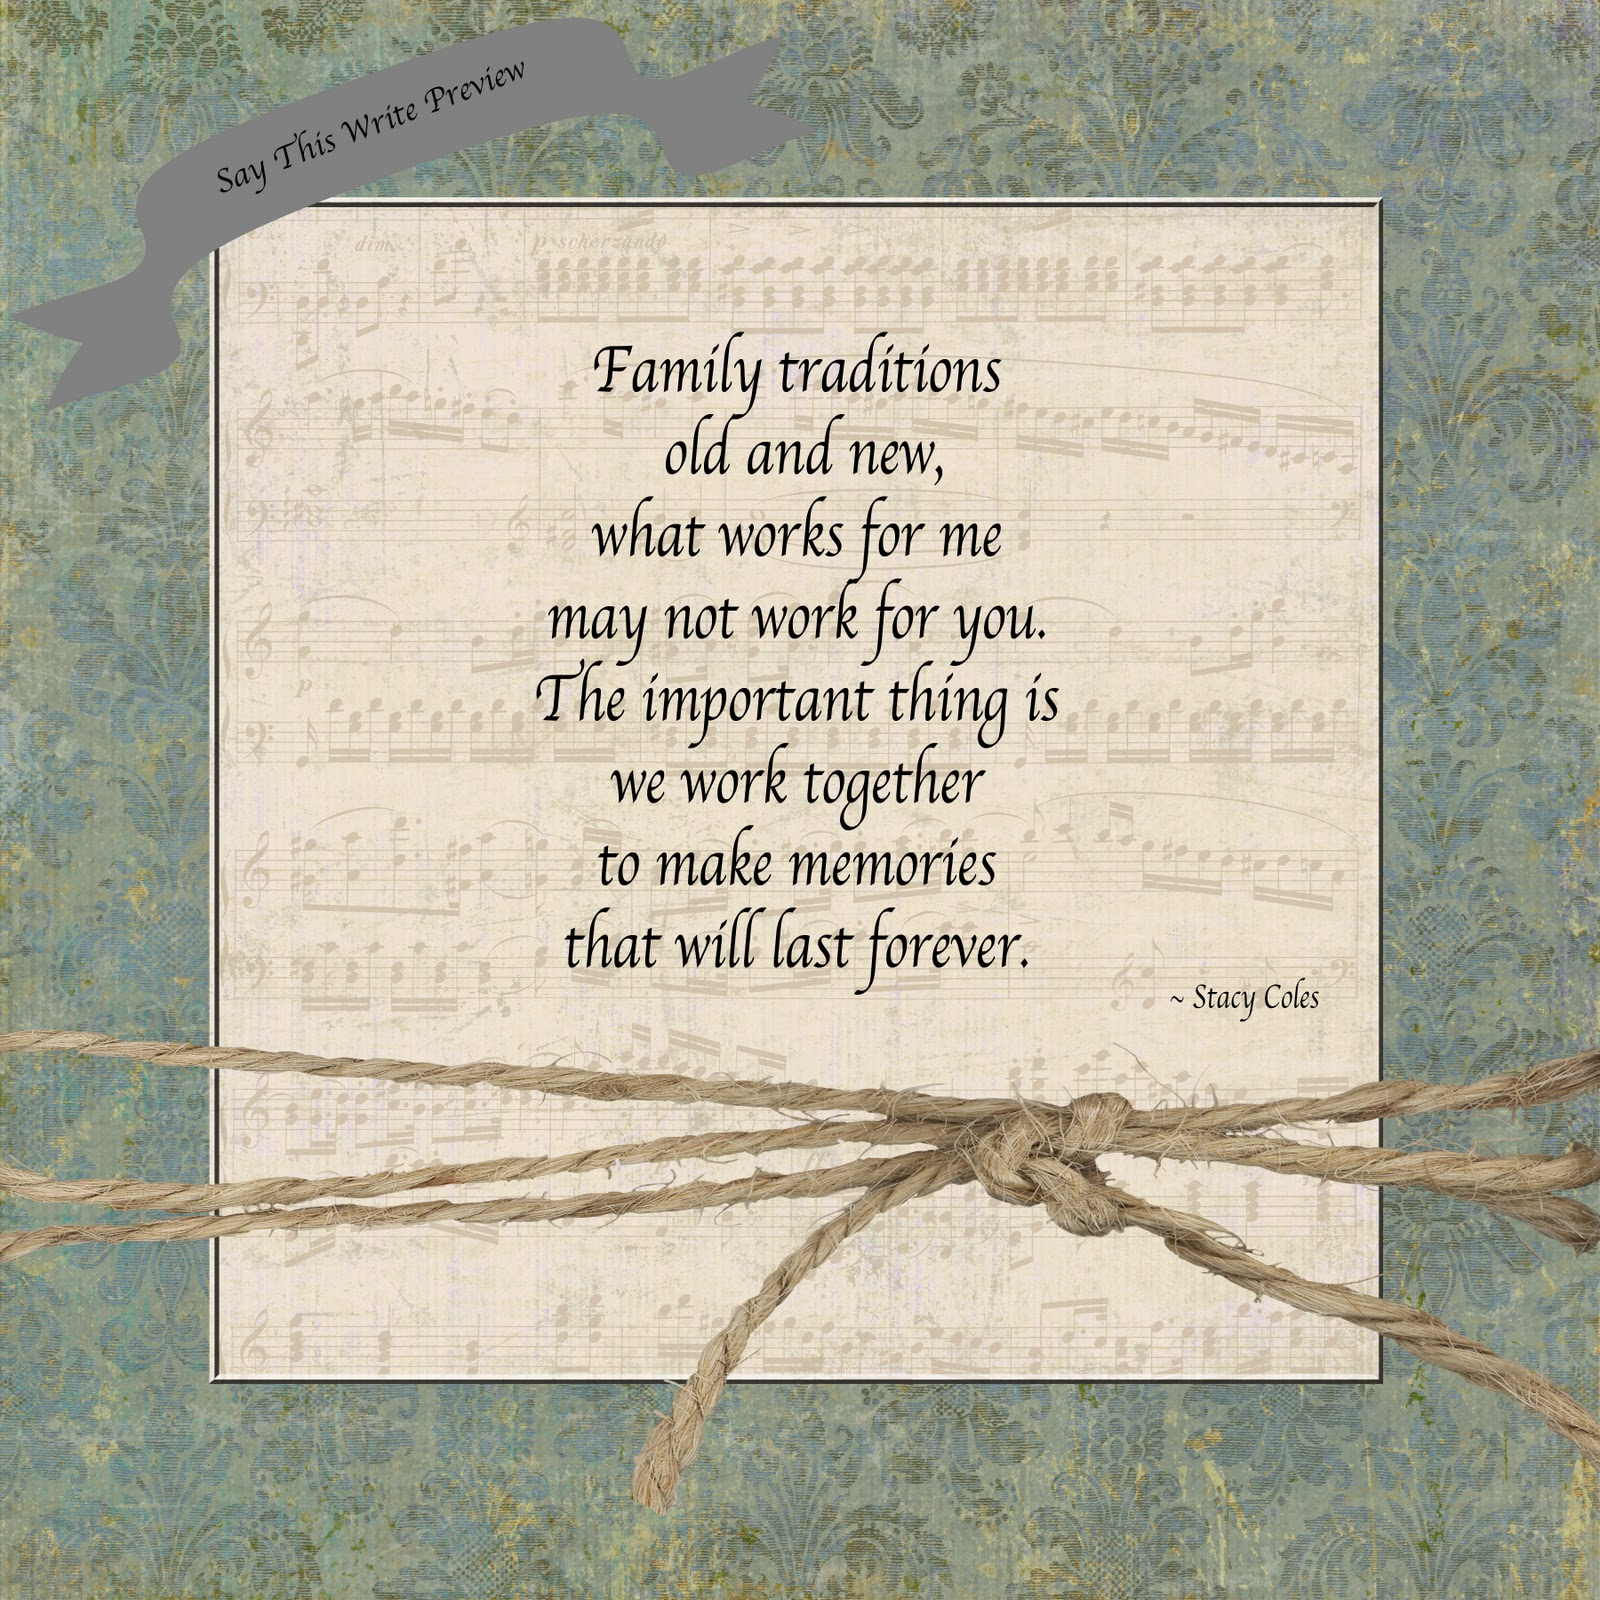 Say This Write Traditions Old And New